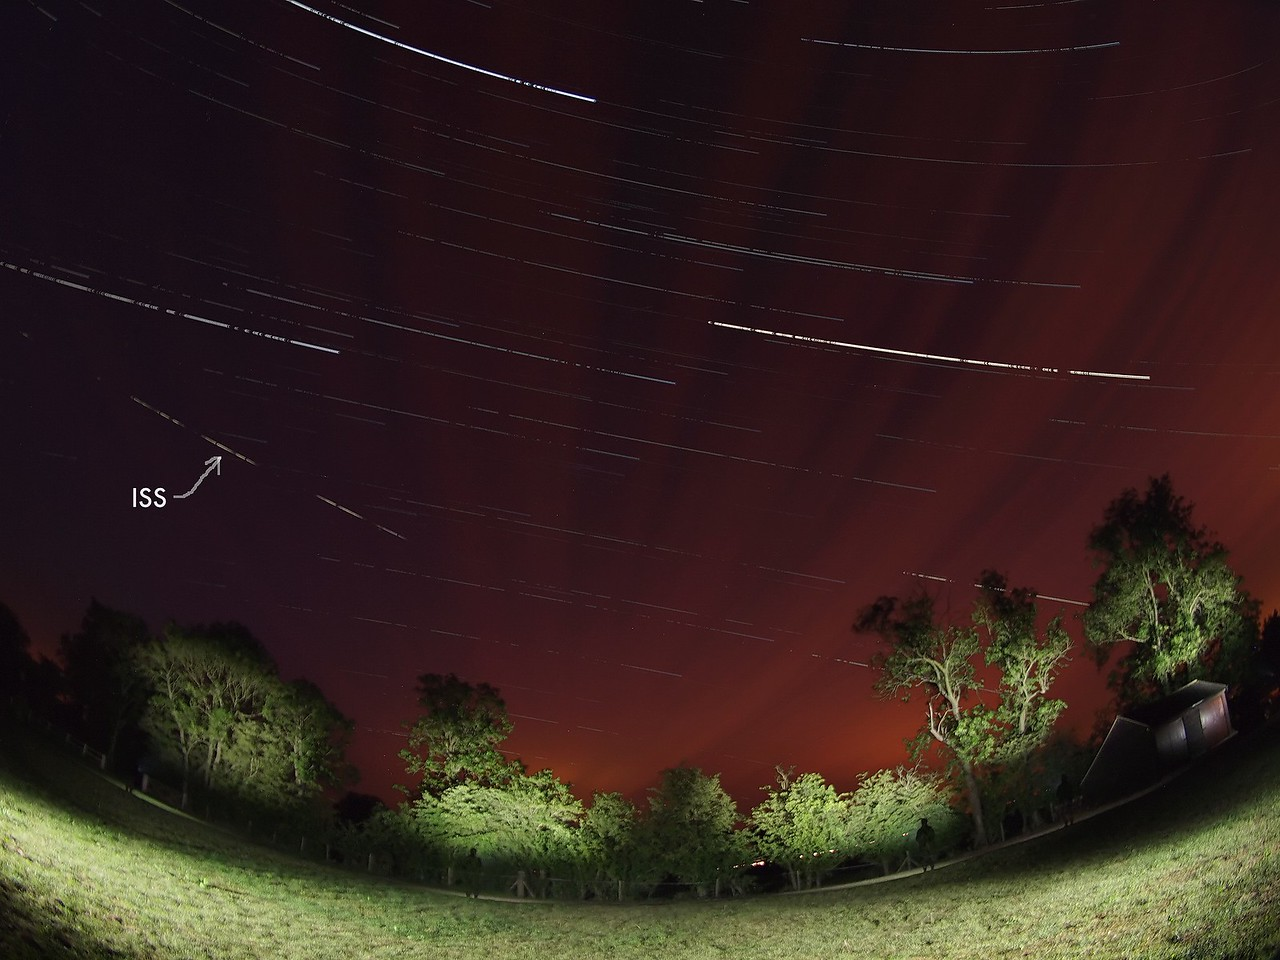 June 07 2011. First early hours ISS flyby (0208hrs) over UK skies. The ghostly scene captured from 2000 images (stacked) showing the ISS, clouds and startrail. Captured with Olympus E5 & 8mm fisheye.